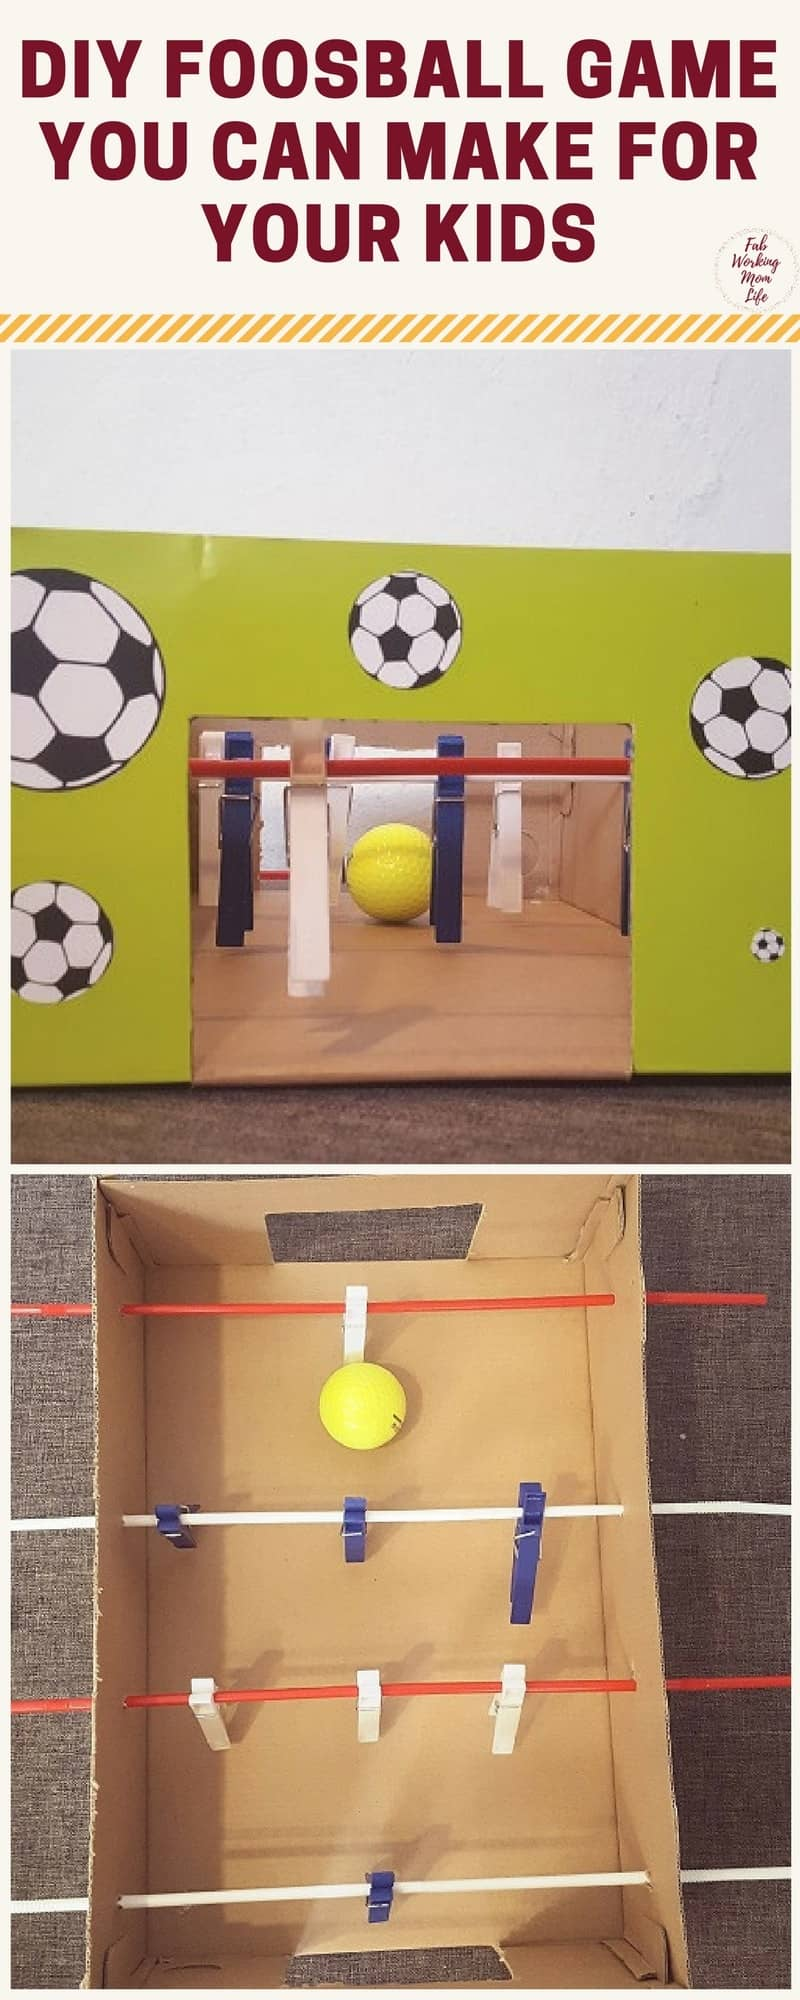 DIY Foosball Game You Can Make For Your Kids